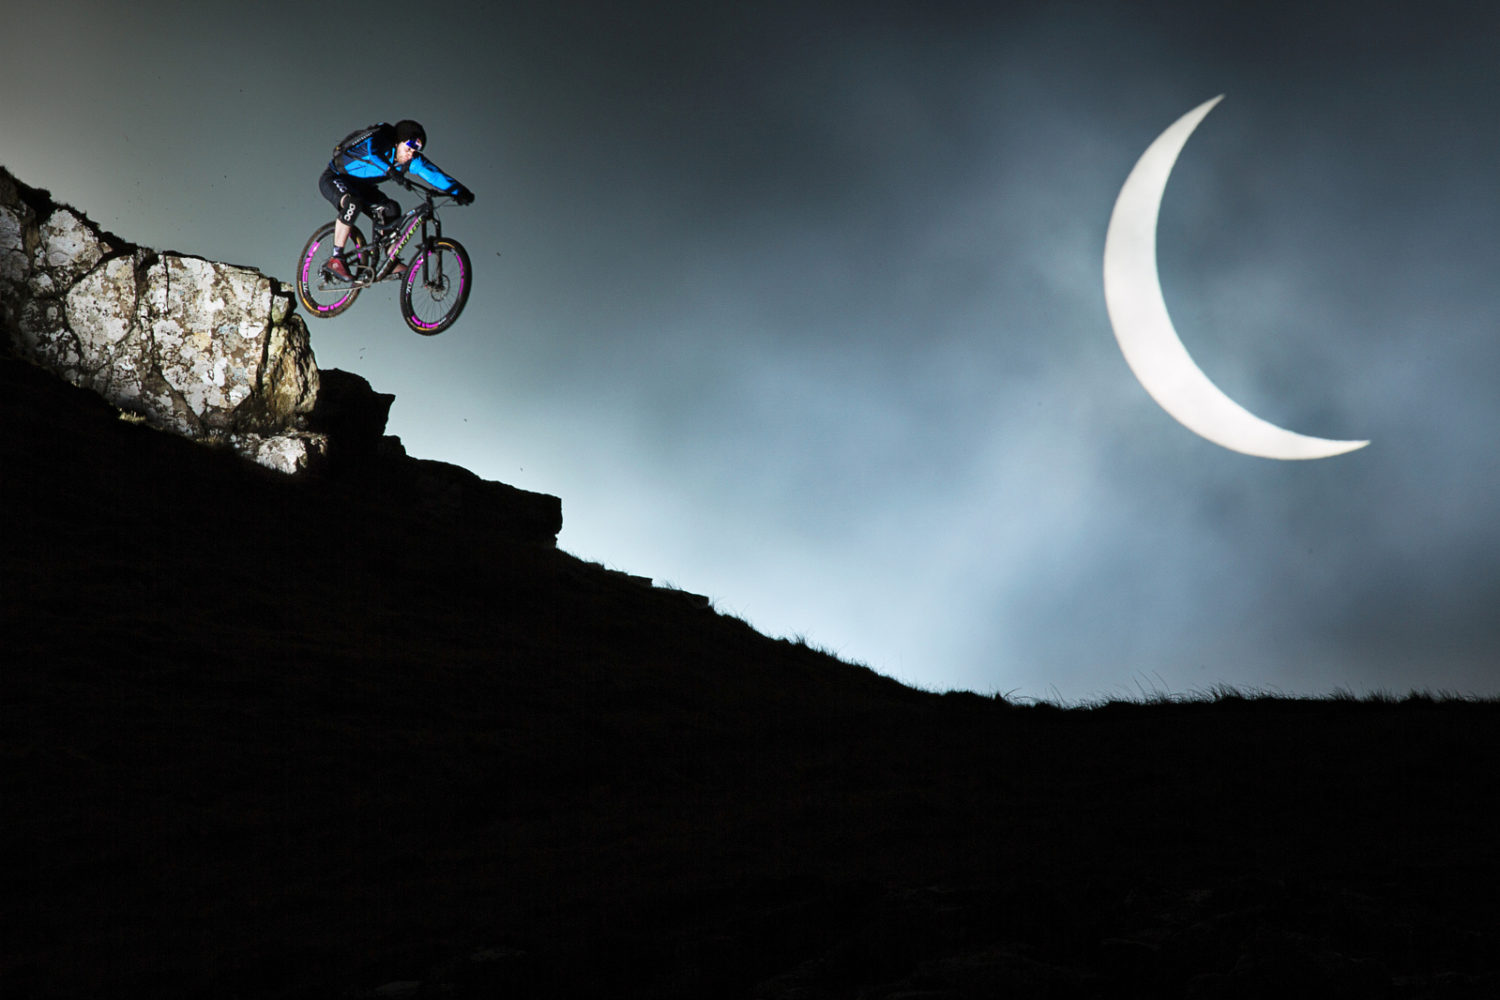 Astrophotography In Action: 10 Sports Photos Shot Under Celestial Objects